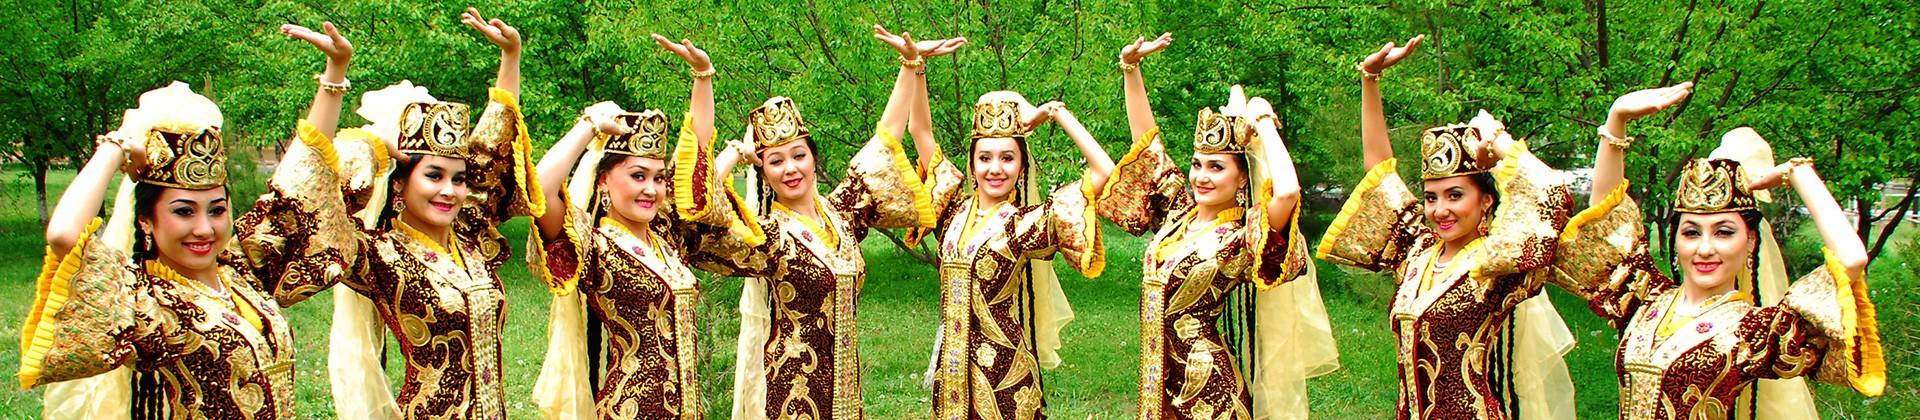 Traditions of Uzbekistan - 1